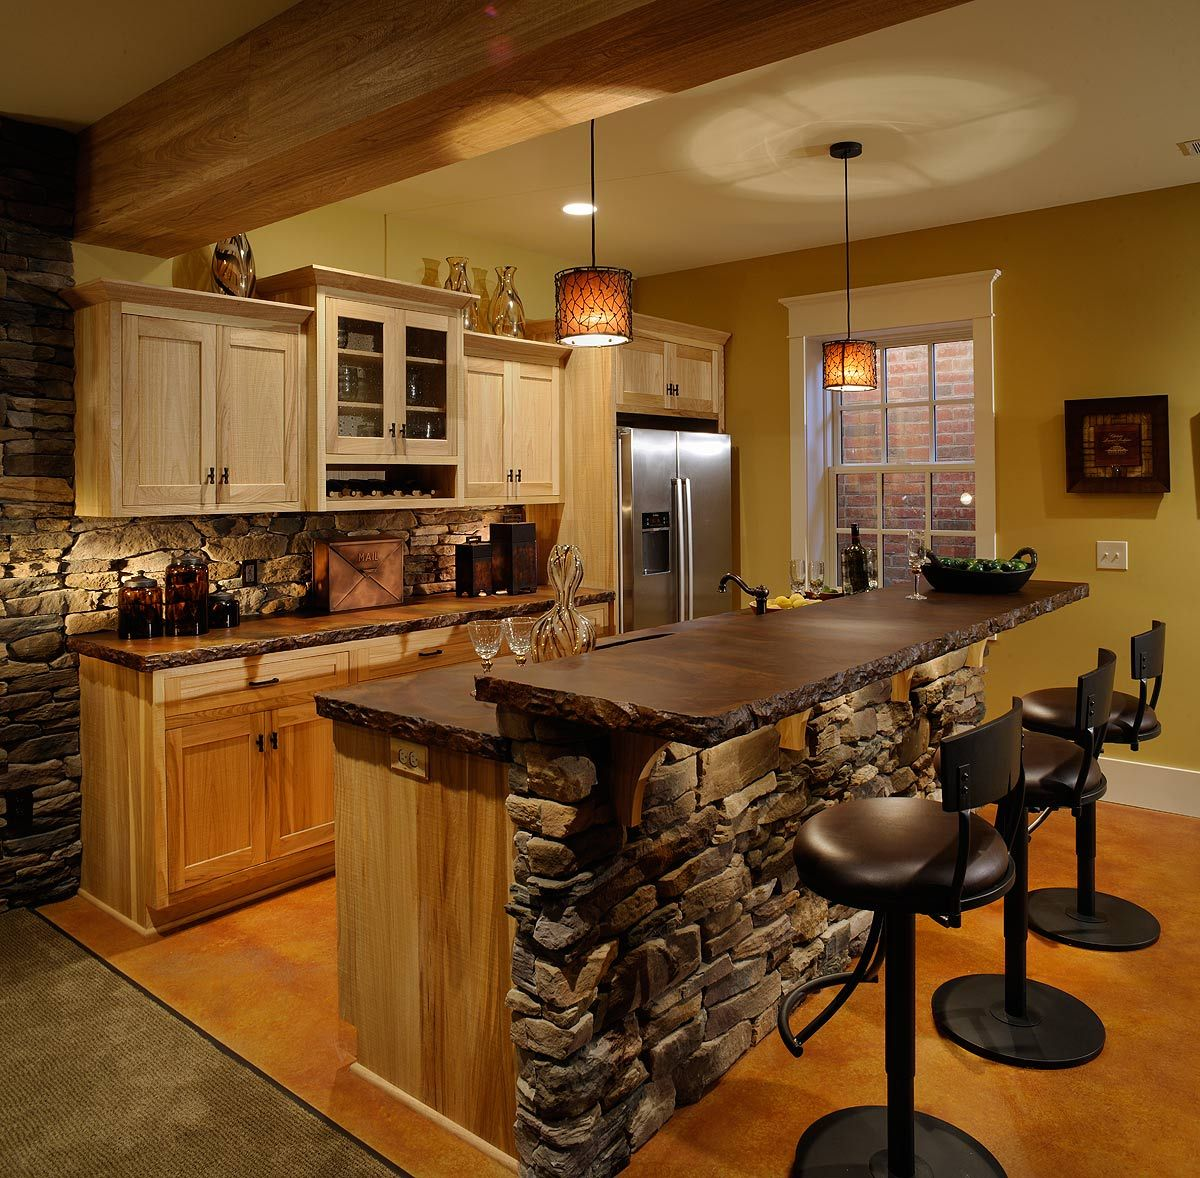 15 Rustic Kitchen Design Photos | Pinterest | Mullets, Ohio and Cabin